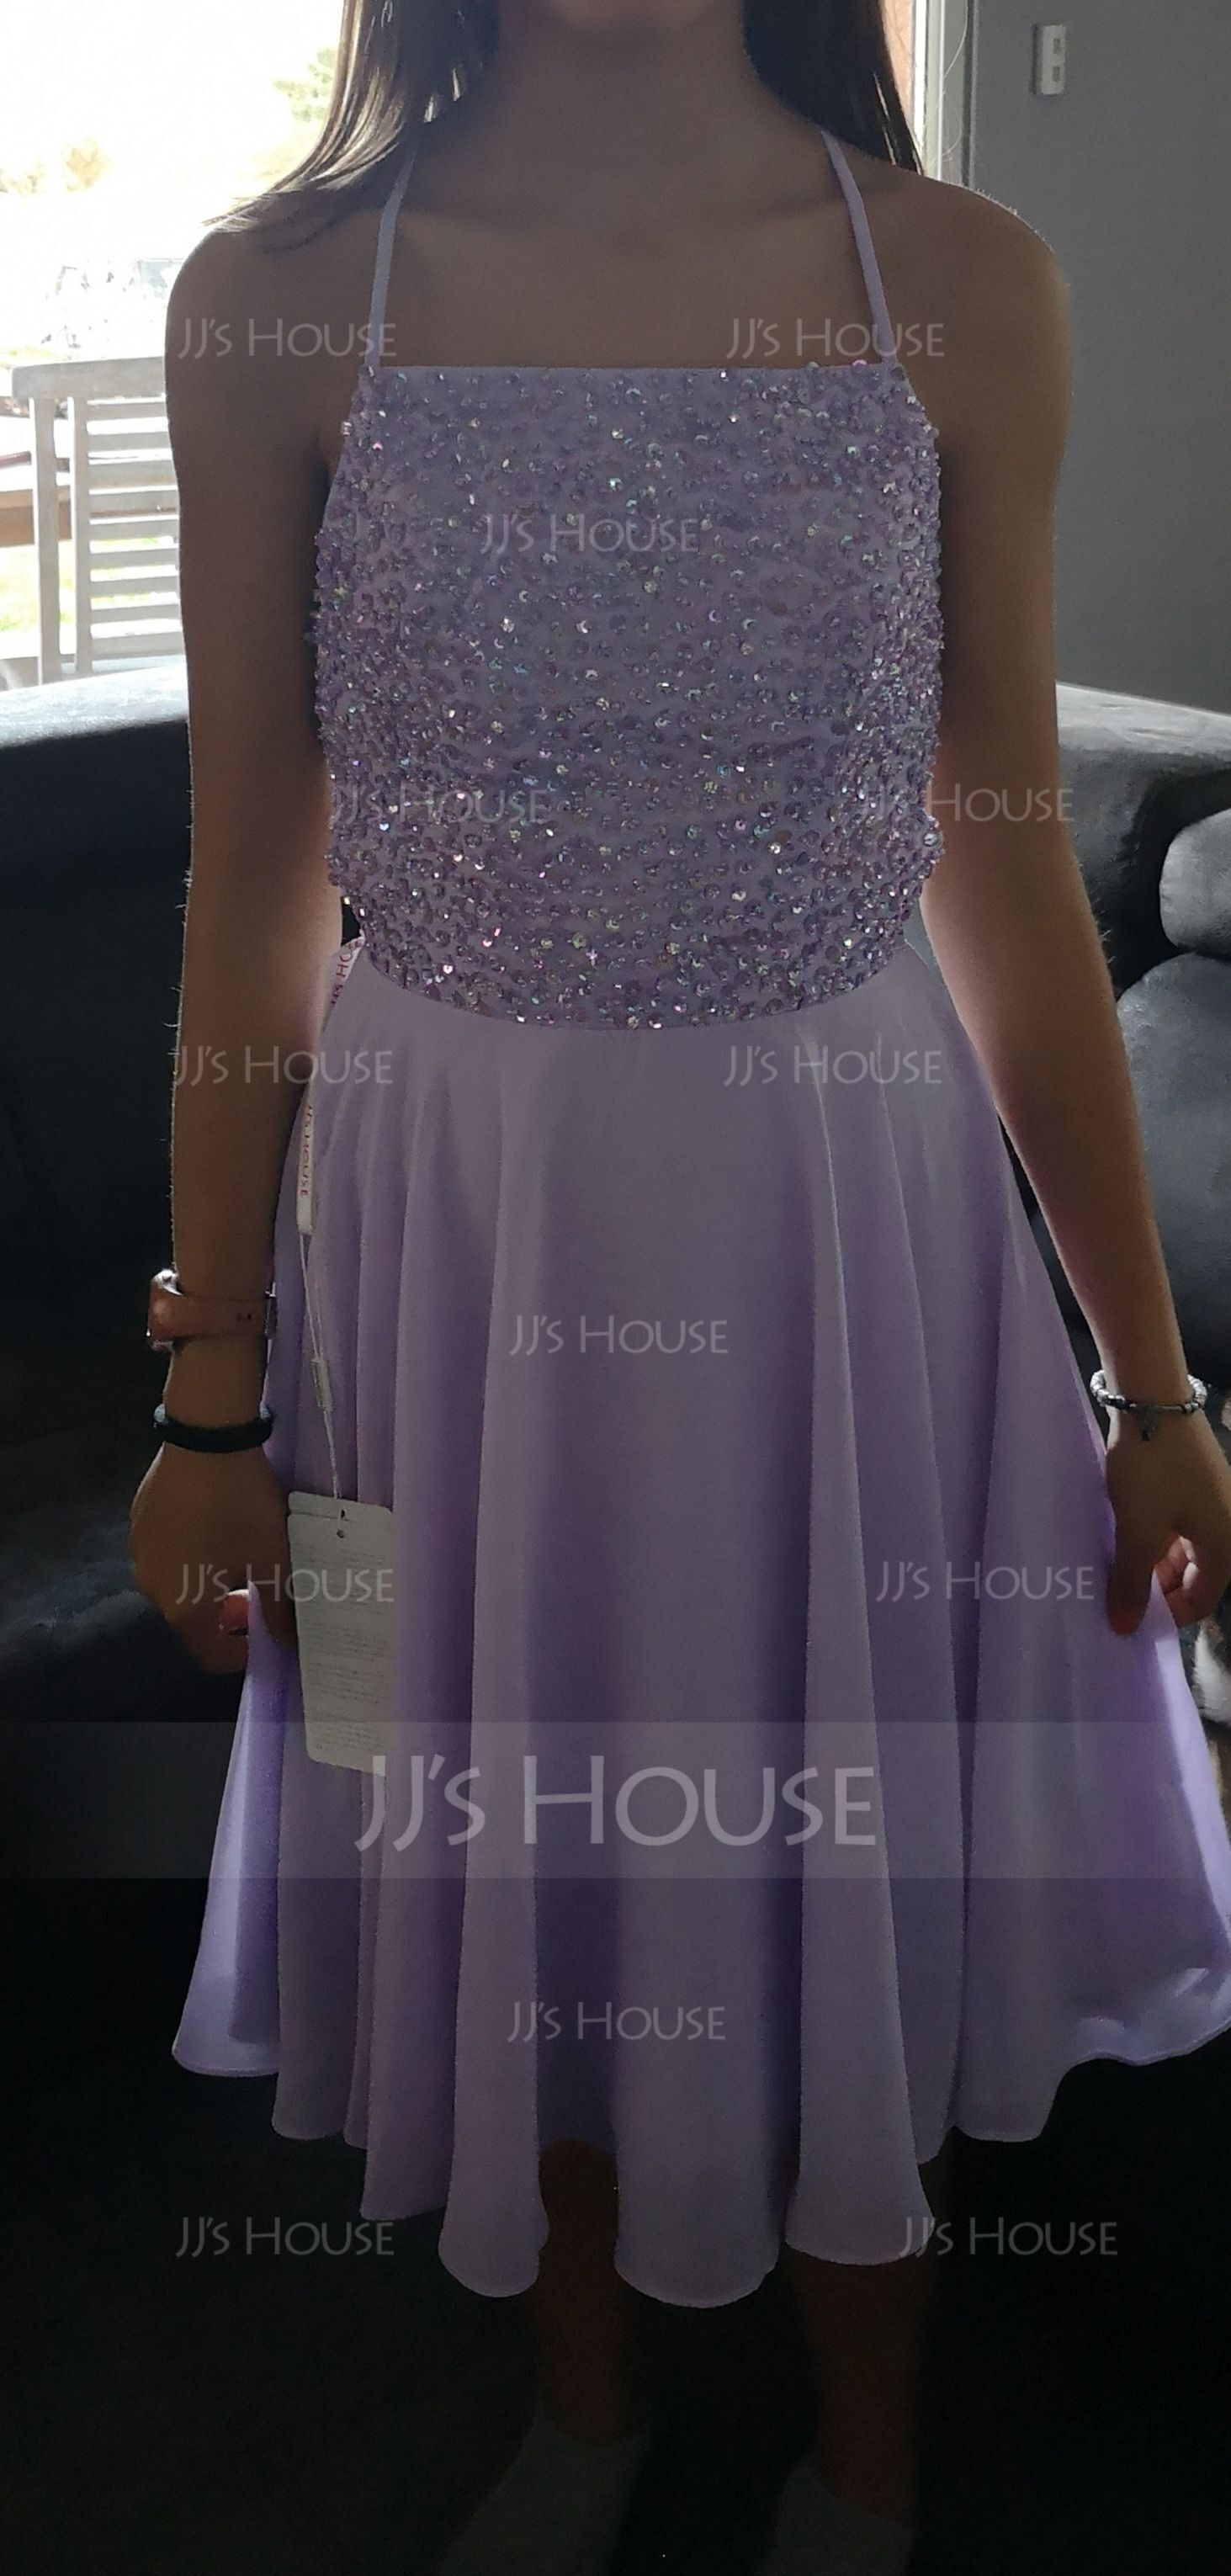 A-Line Square Neckline Knee-Length Chiffon Homecoming Dress With Beading Sequins (300244248)